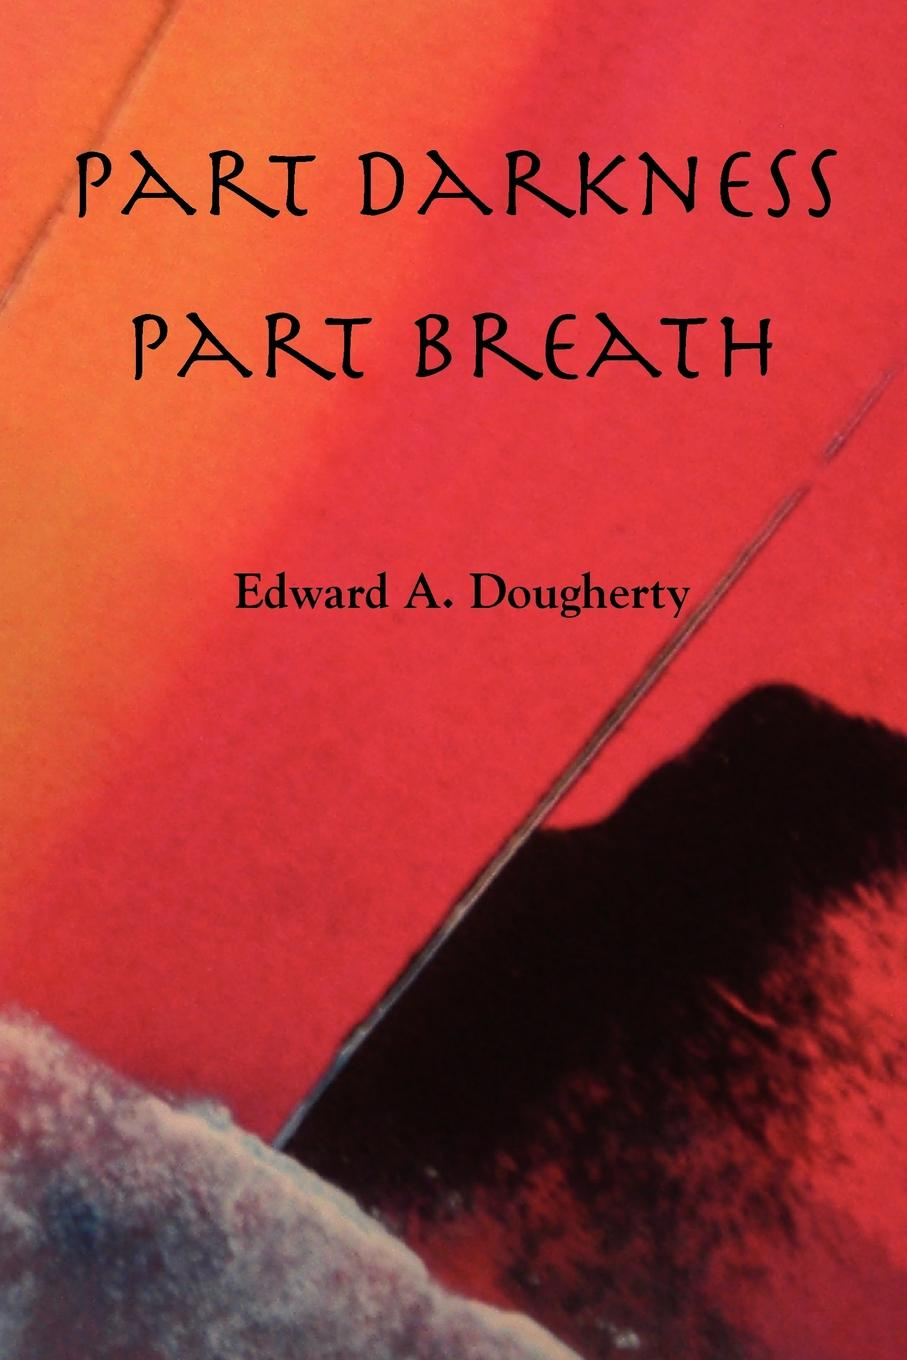 Edward A Dougherty Part Darkness, Part Breath